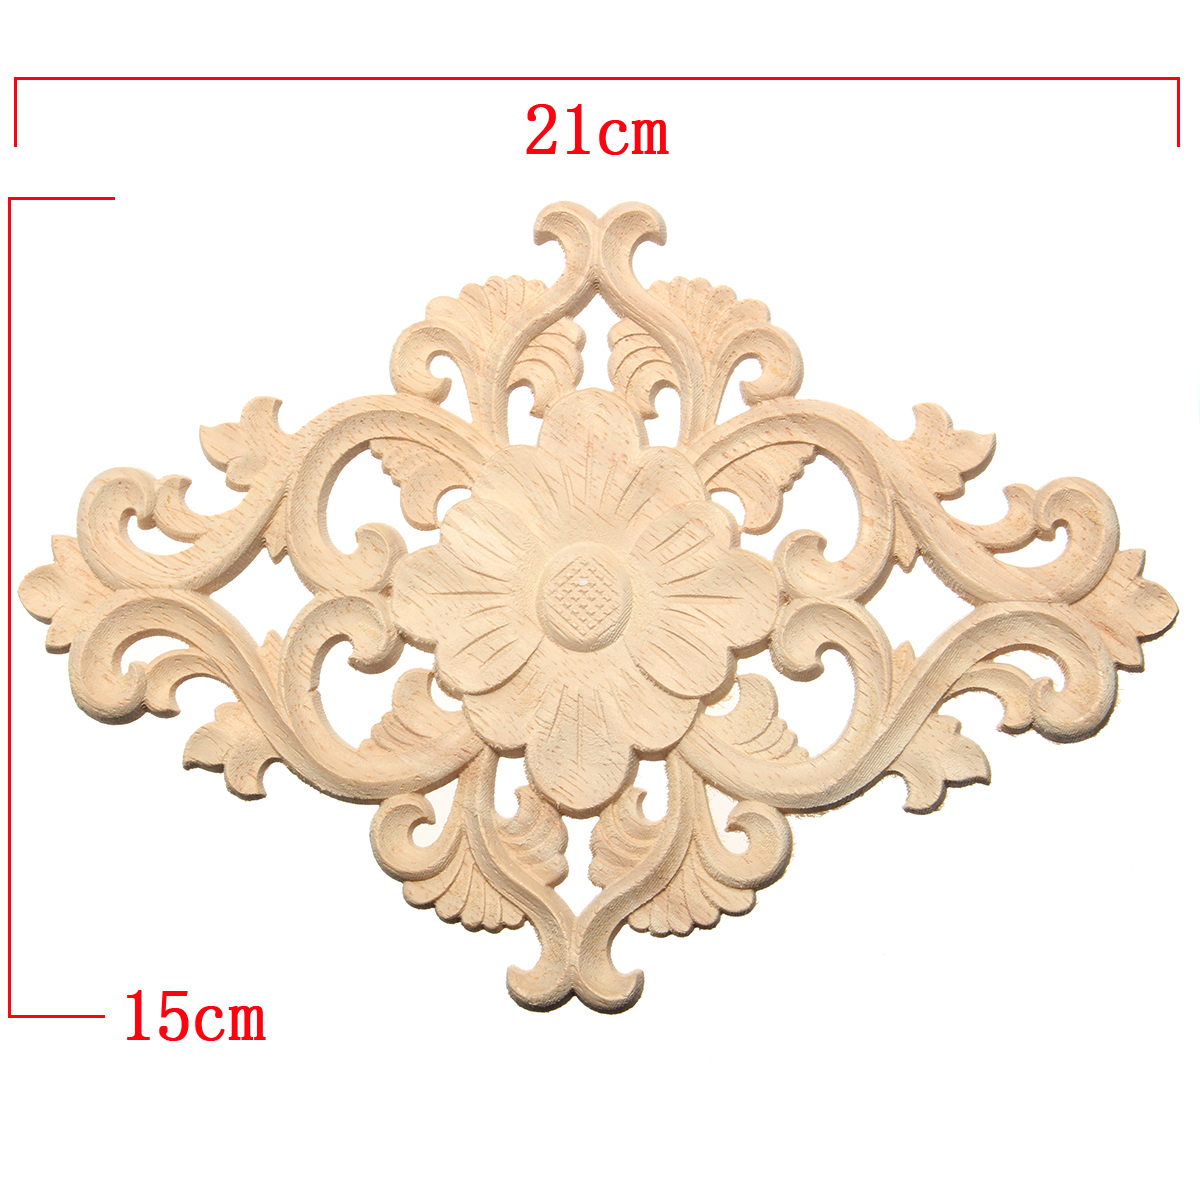 Wood Carving Applique Unpainted Onlay Flower Pattern Door Furniture Cabinet Decal Decor